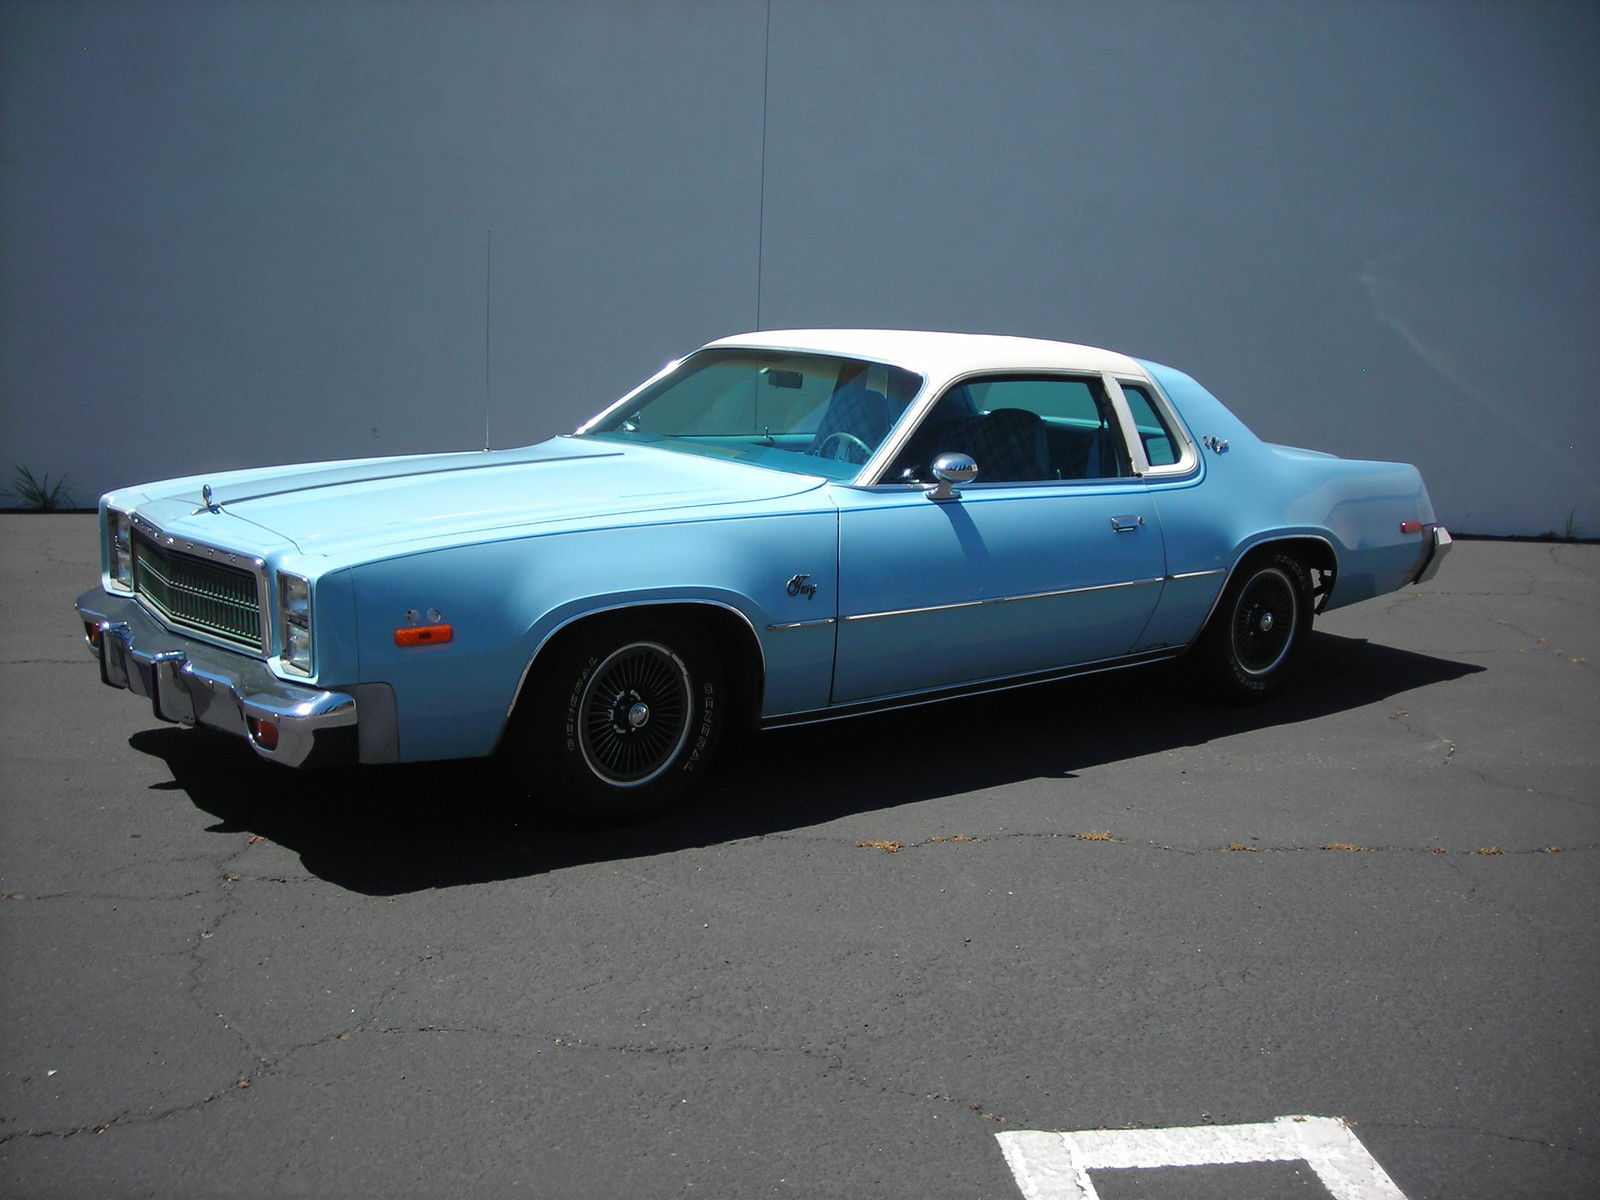 Craigslist San Diego Cars By Owner >> All American Classic Cars: 1977 Plymouth Fury Sport 2-Door Hardtop